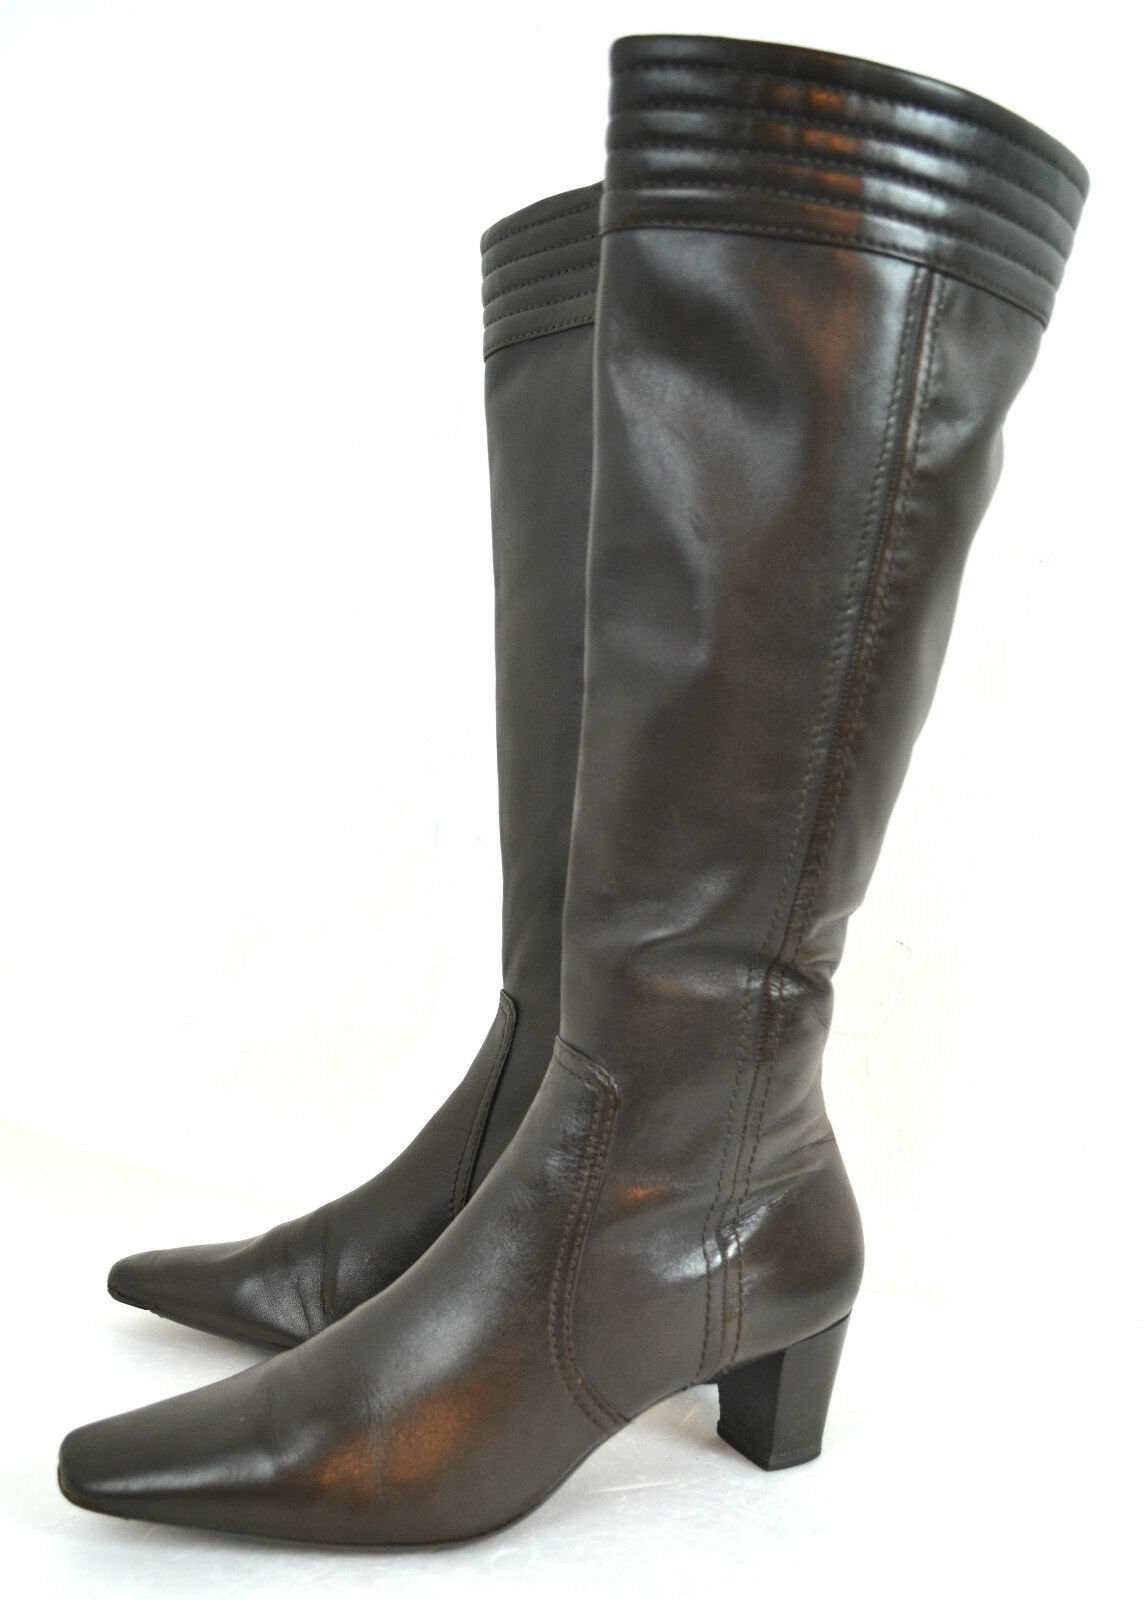 COLE HAAN BROWN GENUINE LEATHER WOMEN BOOTS SIZE 9 M 2.1/4